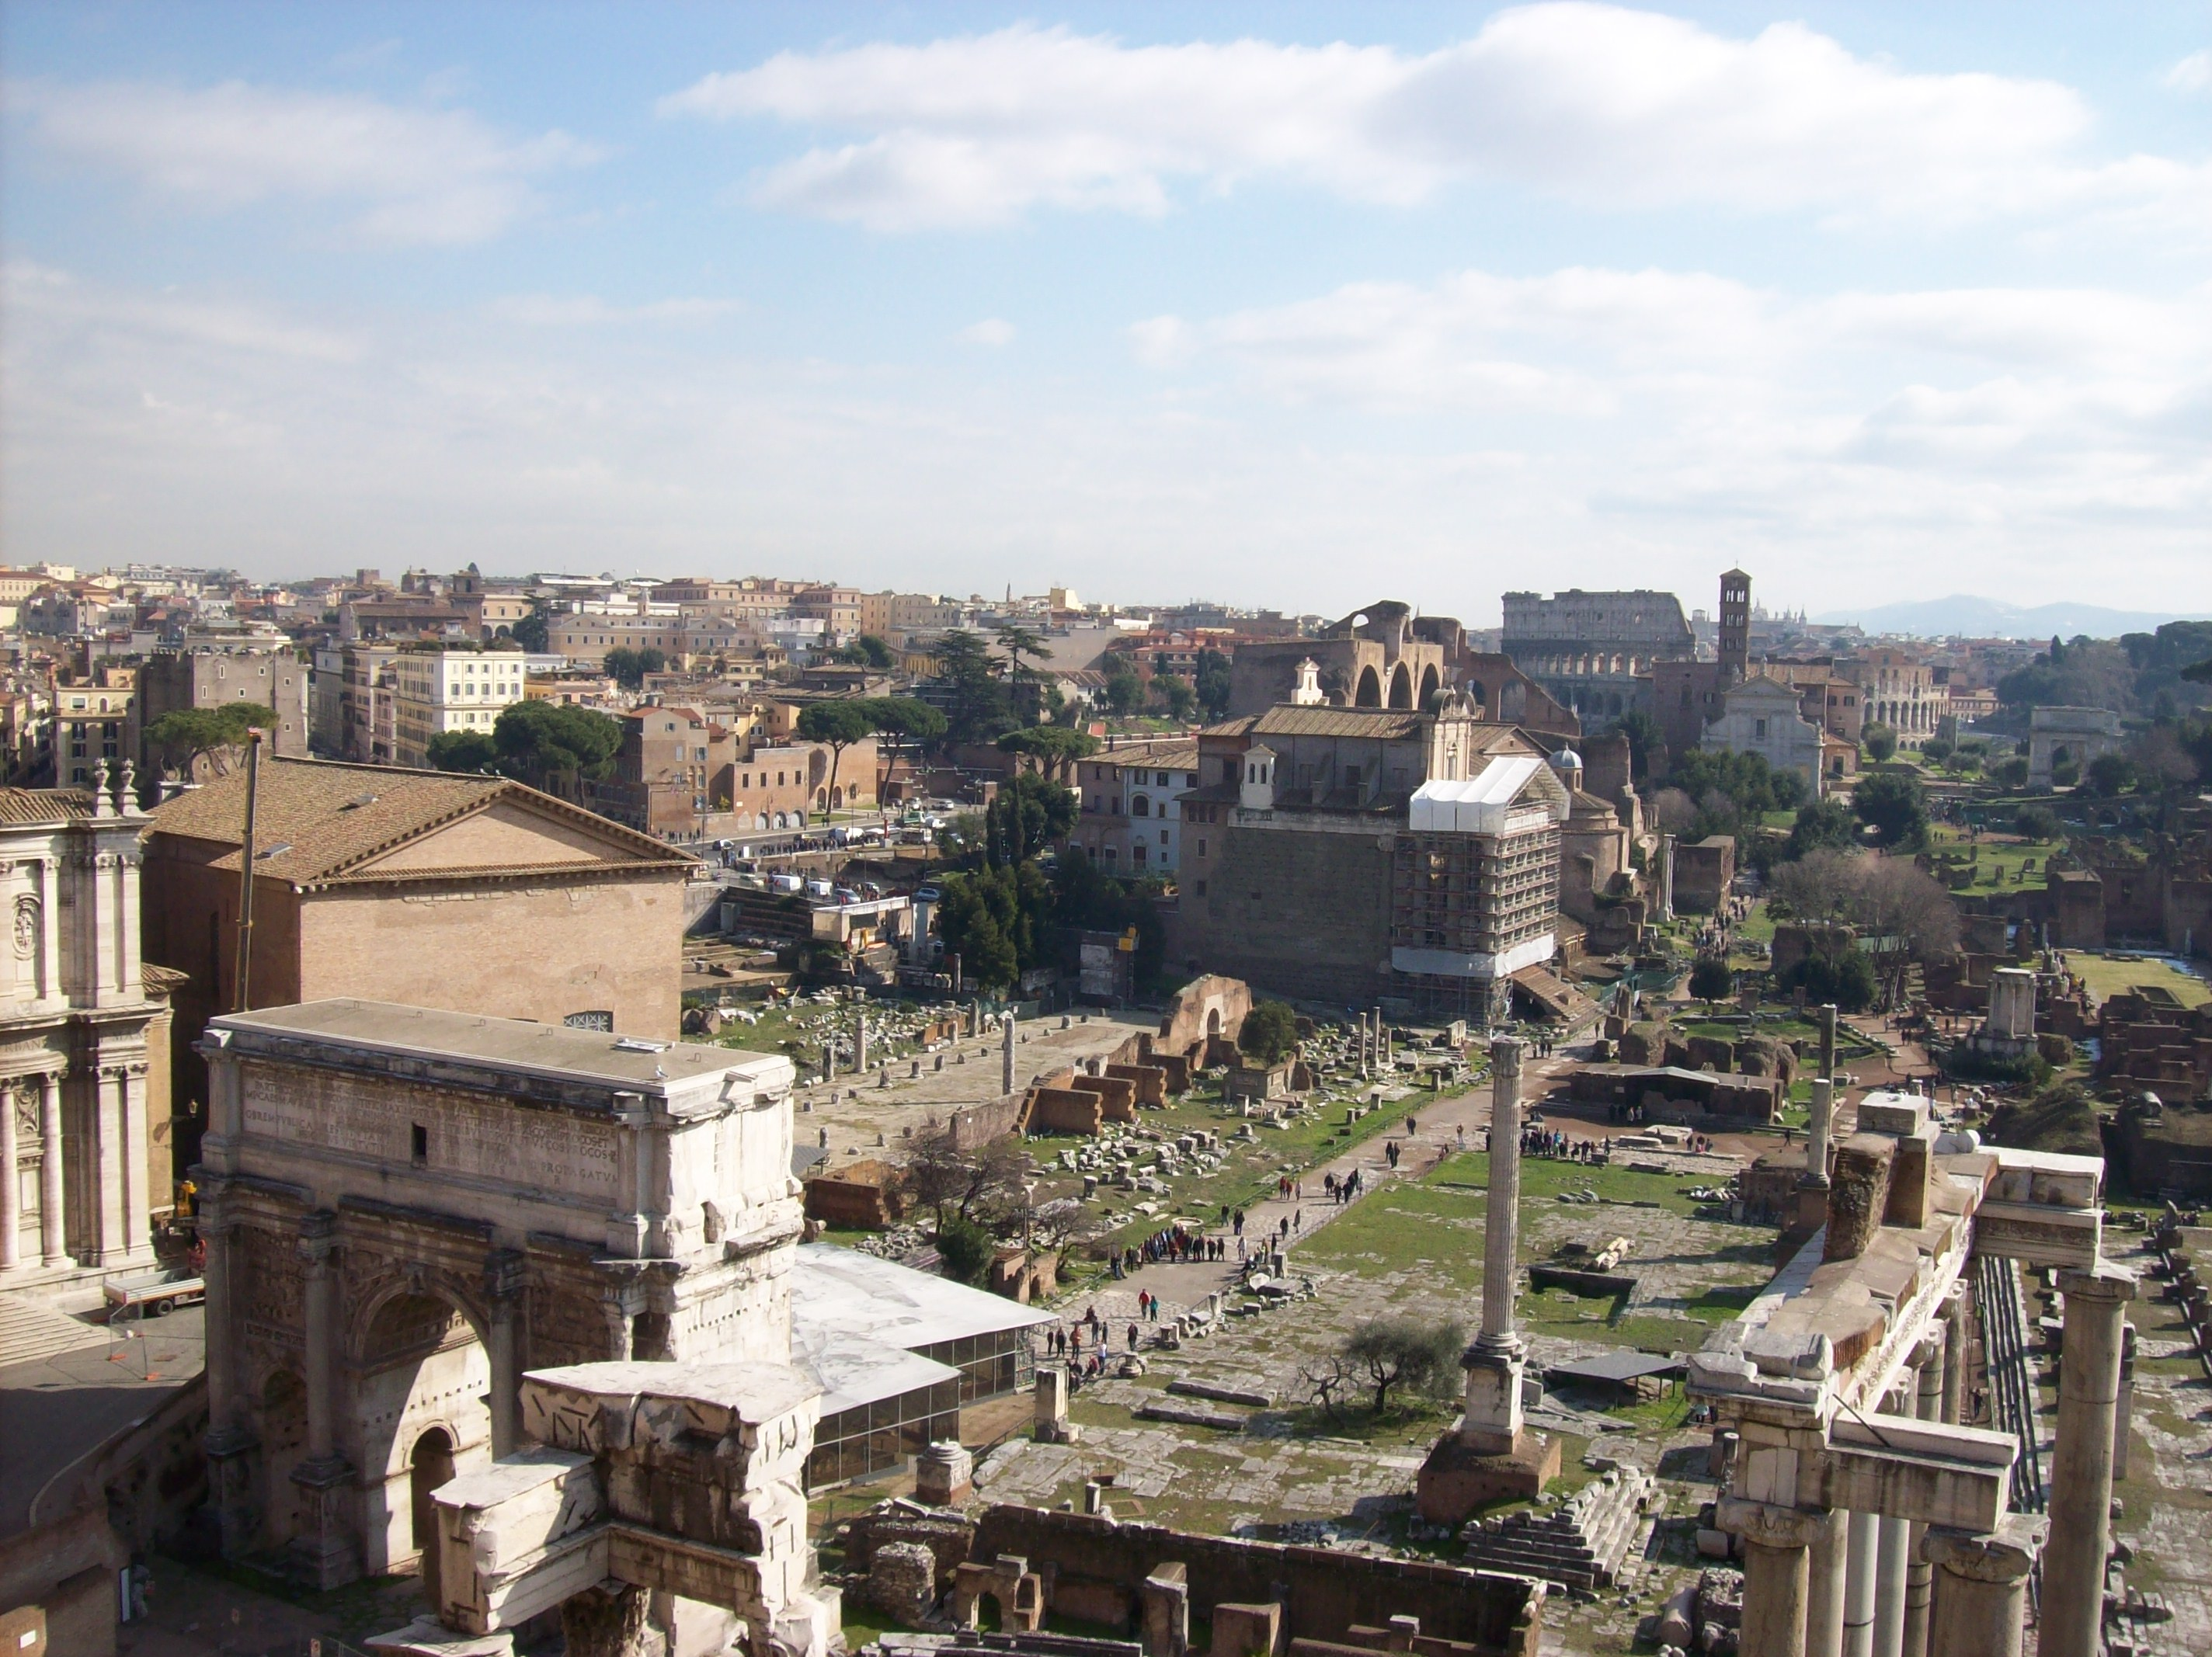 https://upload.wikimedia.org/wikipedia/commons/e/e1/2012-02-17_Foro_Romano_da_Palazzo_Senatorio_1.jpg